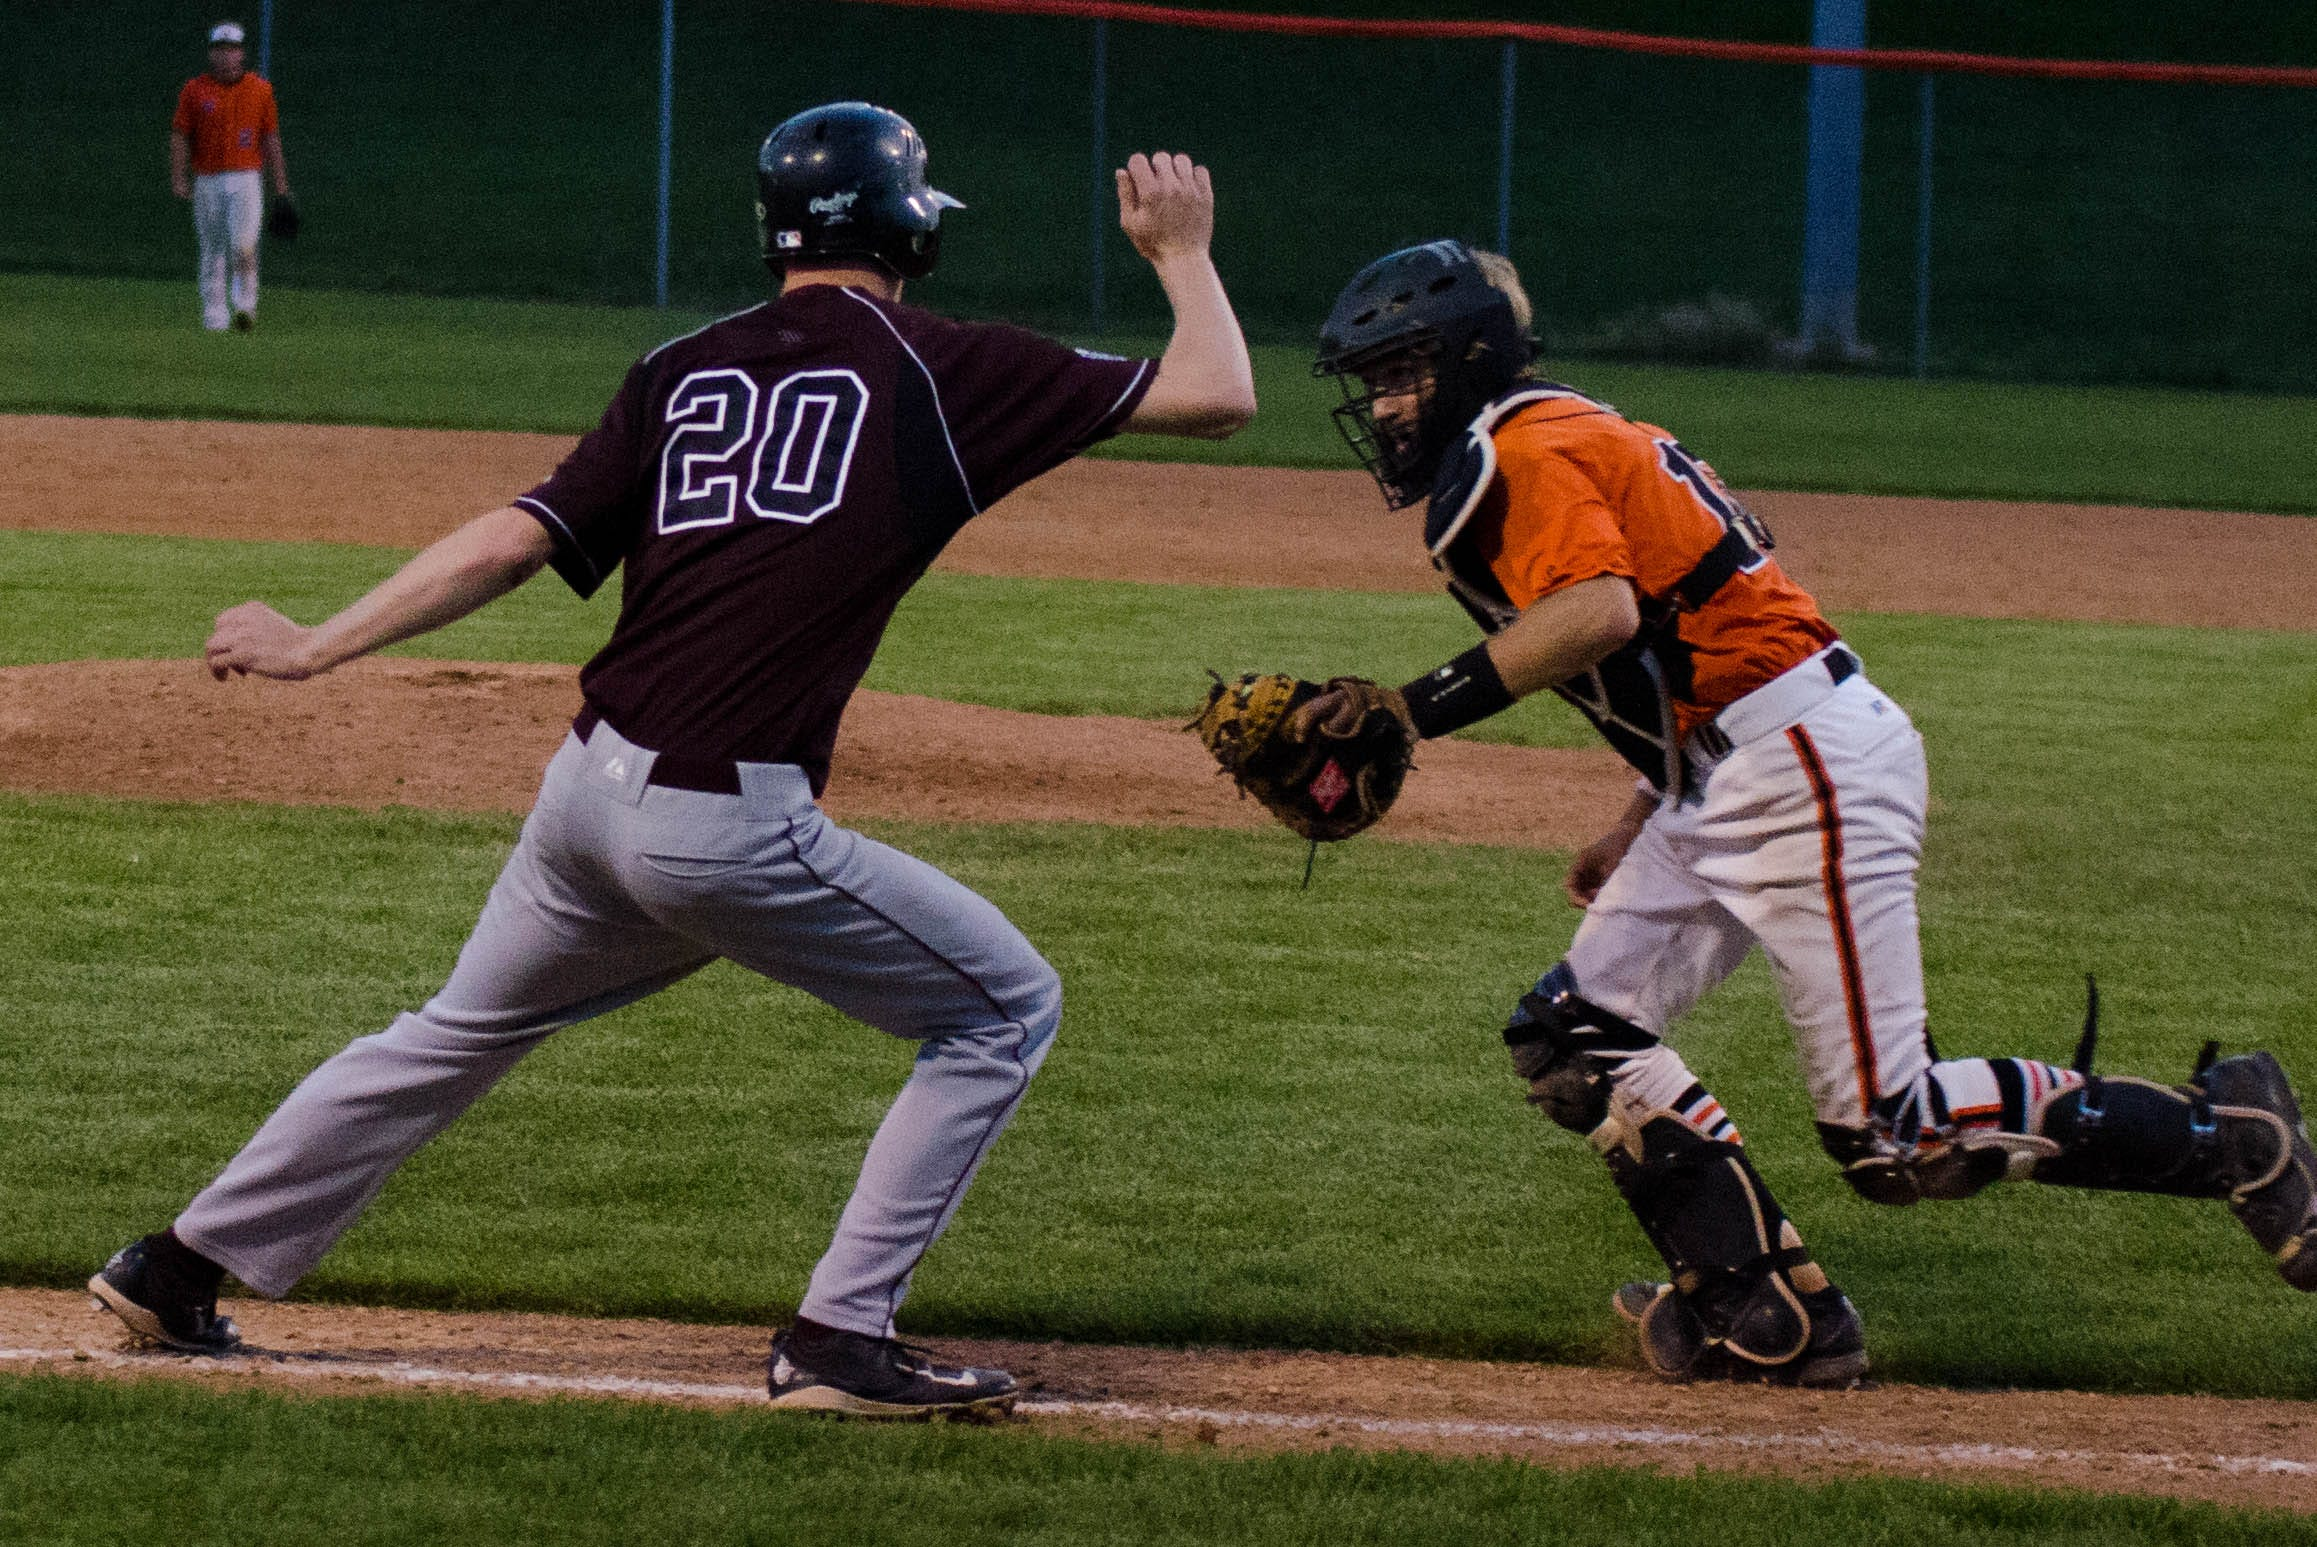 Dowling Catholic's Ben Olson, left, gets caught between third base and home by Valley catcher Mason Whitham during Tuesday's baseball doubleheader at Valley. The Maroons were victorious 9-3 in Game 2 after dropping the opener 4-3.